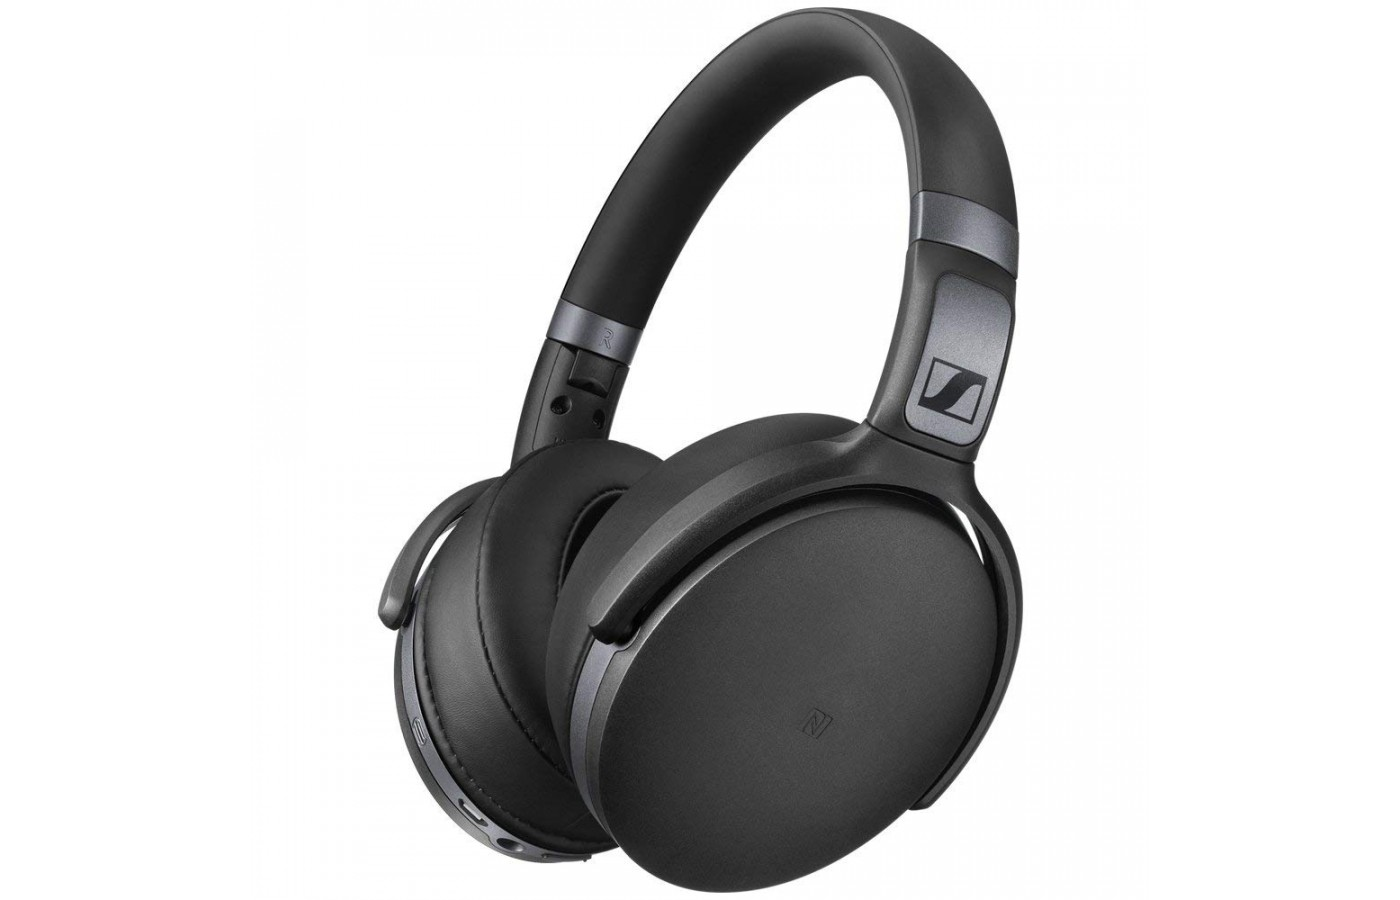 Sennheiser HD 4.40 wireless Bluetooth headphones feature Bluetooth 4.0 technology and high-quality sound.